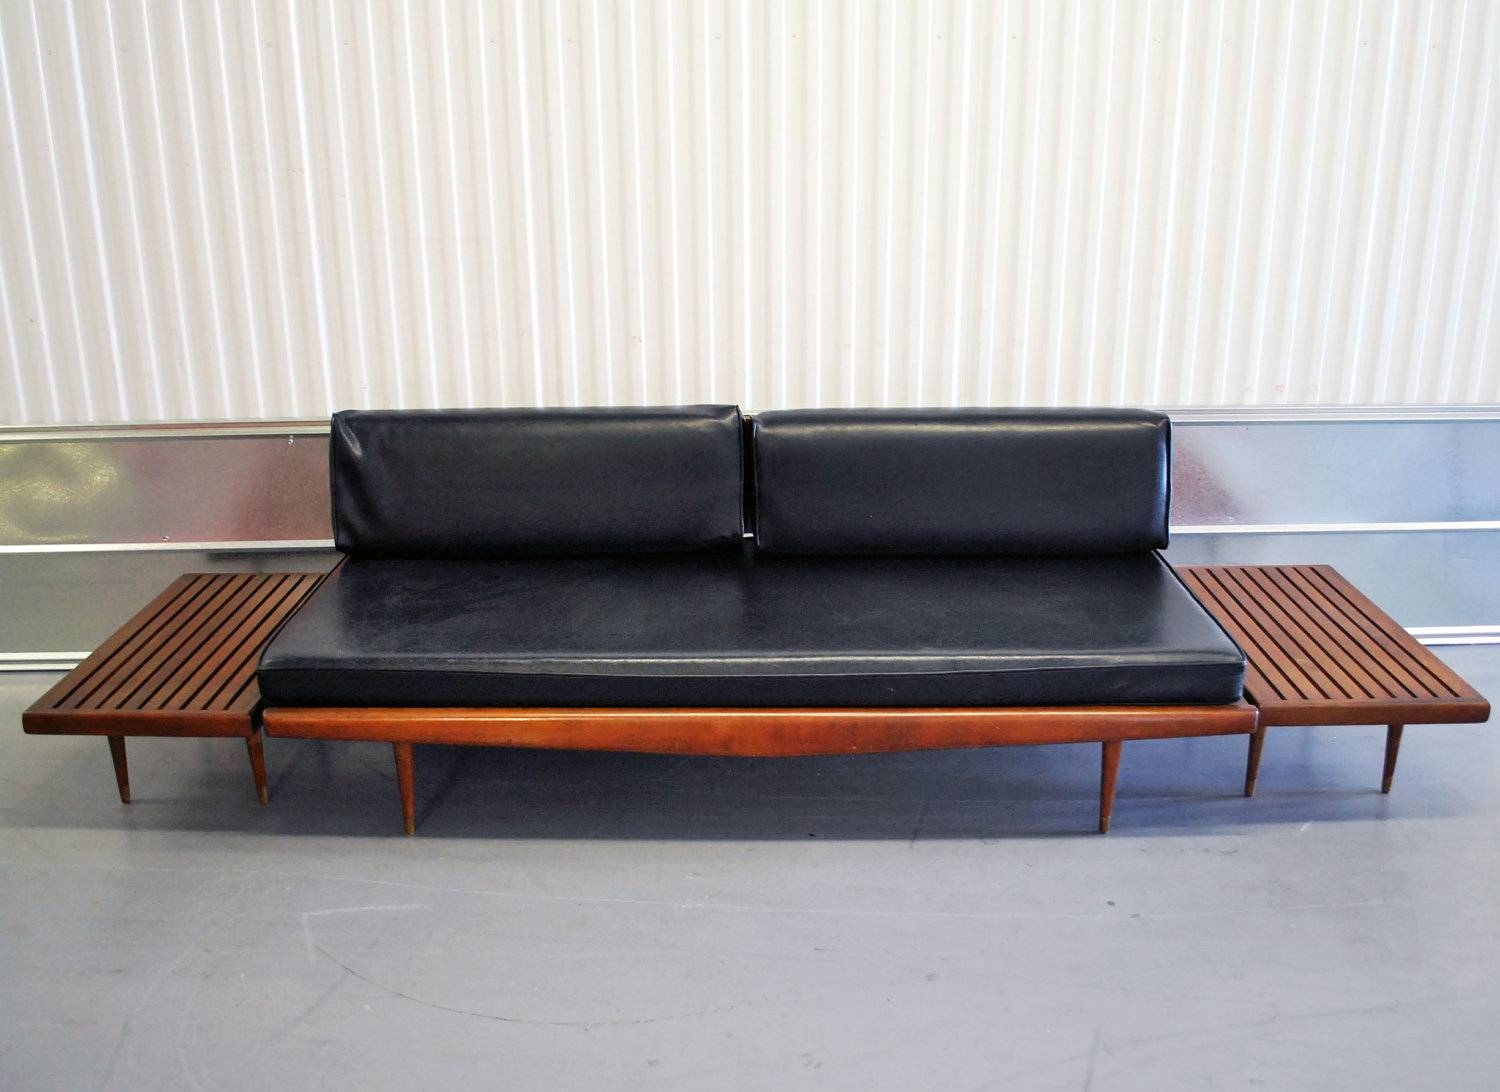 Danish Modern Furniture Couch : Lovable Perfect Danish Modern pertaining to Danish Modern Sofas (Image 3 of 15)